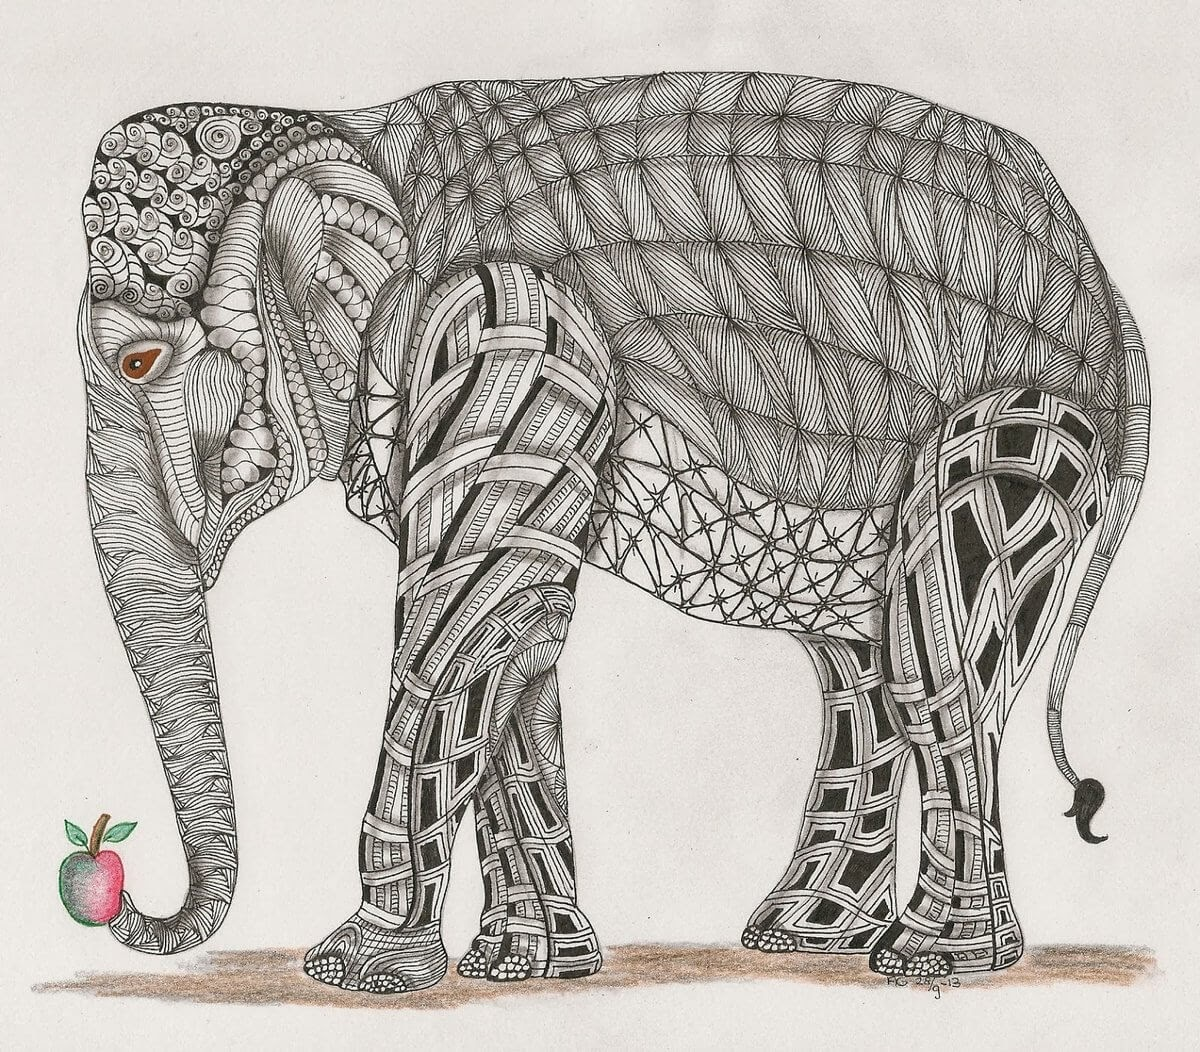 02-Elephant-Adri-van-Garderen-Animals-Given-the-Zentangle-Treatment-www-designstack-co